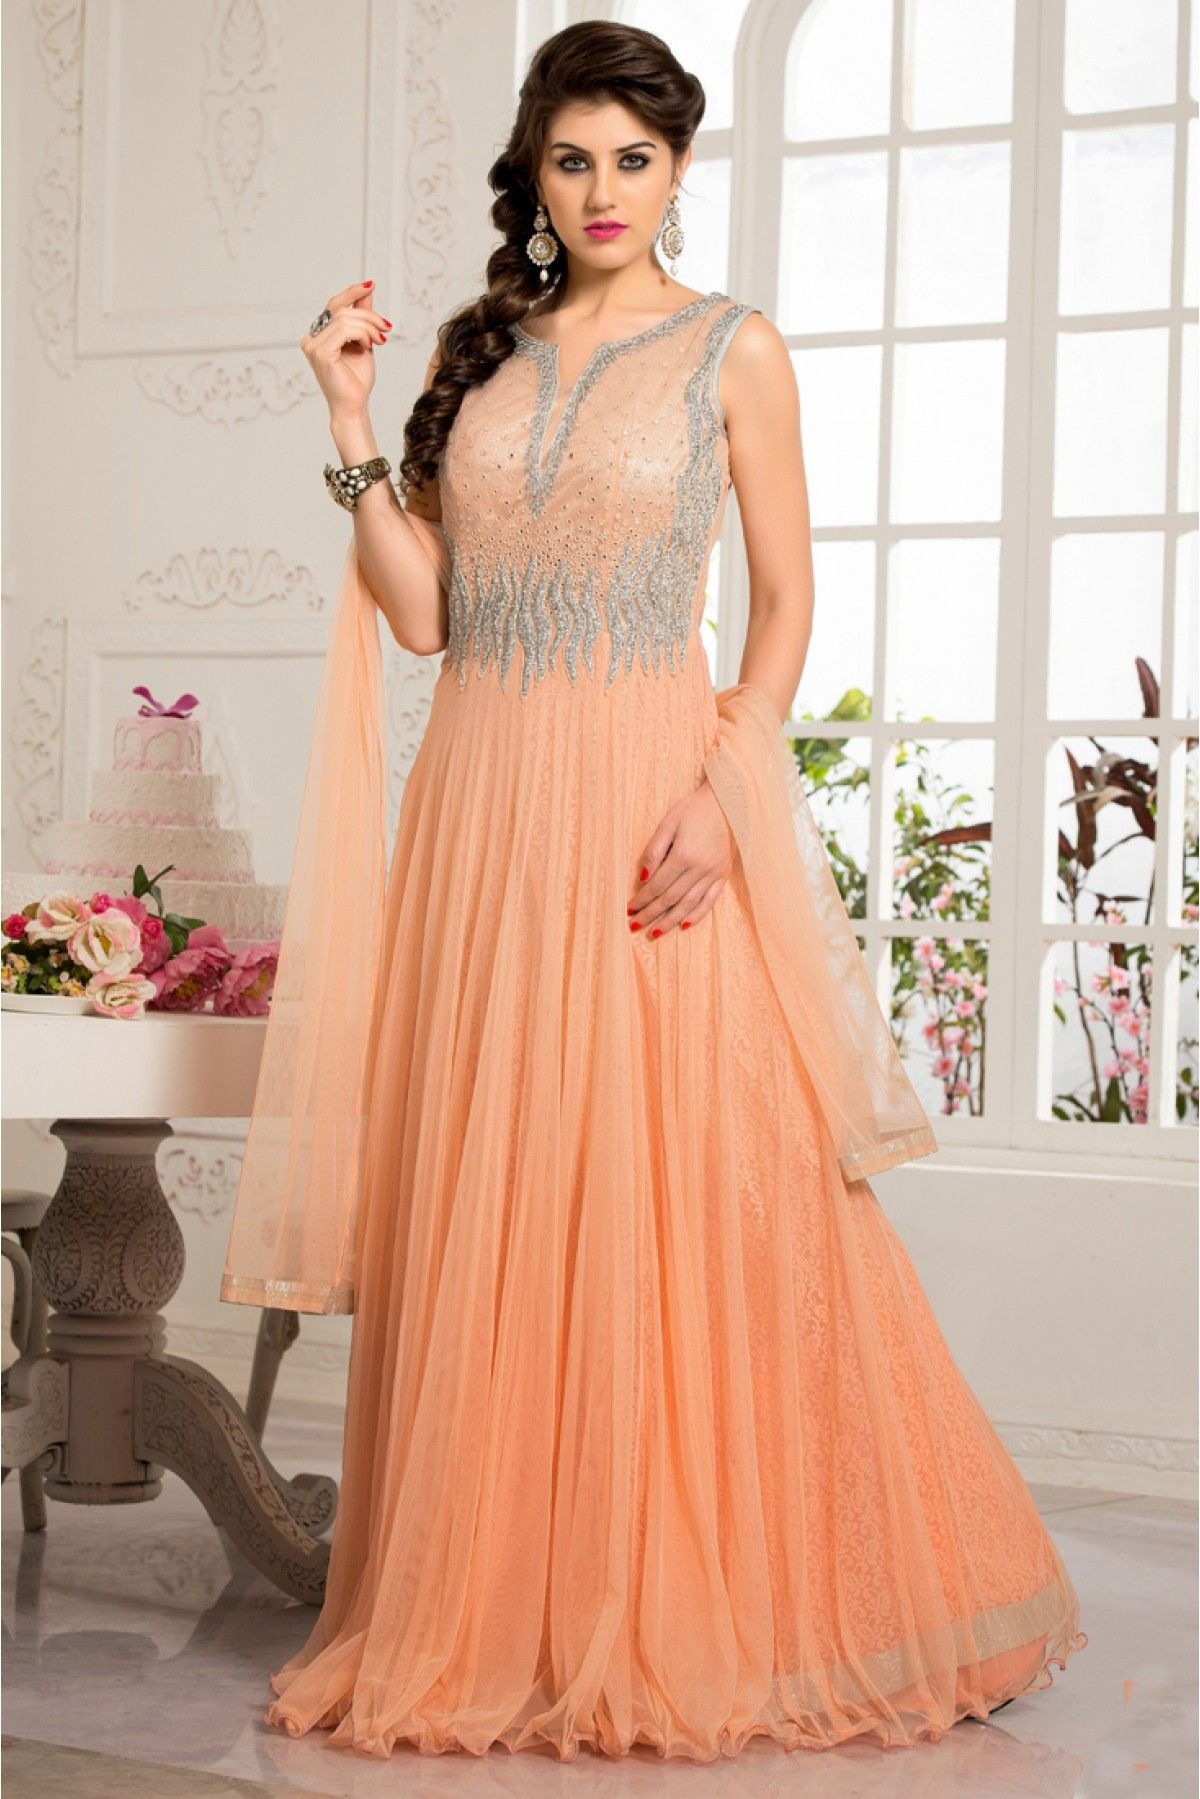 7eccf22e16 Peach Colour Net Fabric Designer Semi Stitched Gown Comes With Matching  Dupatta. This Gown Is Crafted With Diamond Work,Mirror Work,Sequins Work,Stone  Work.